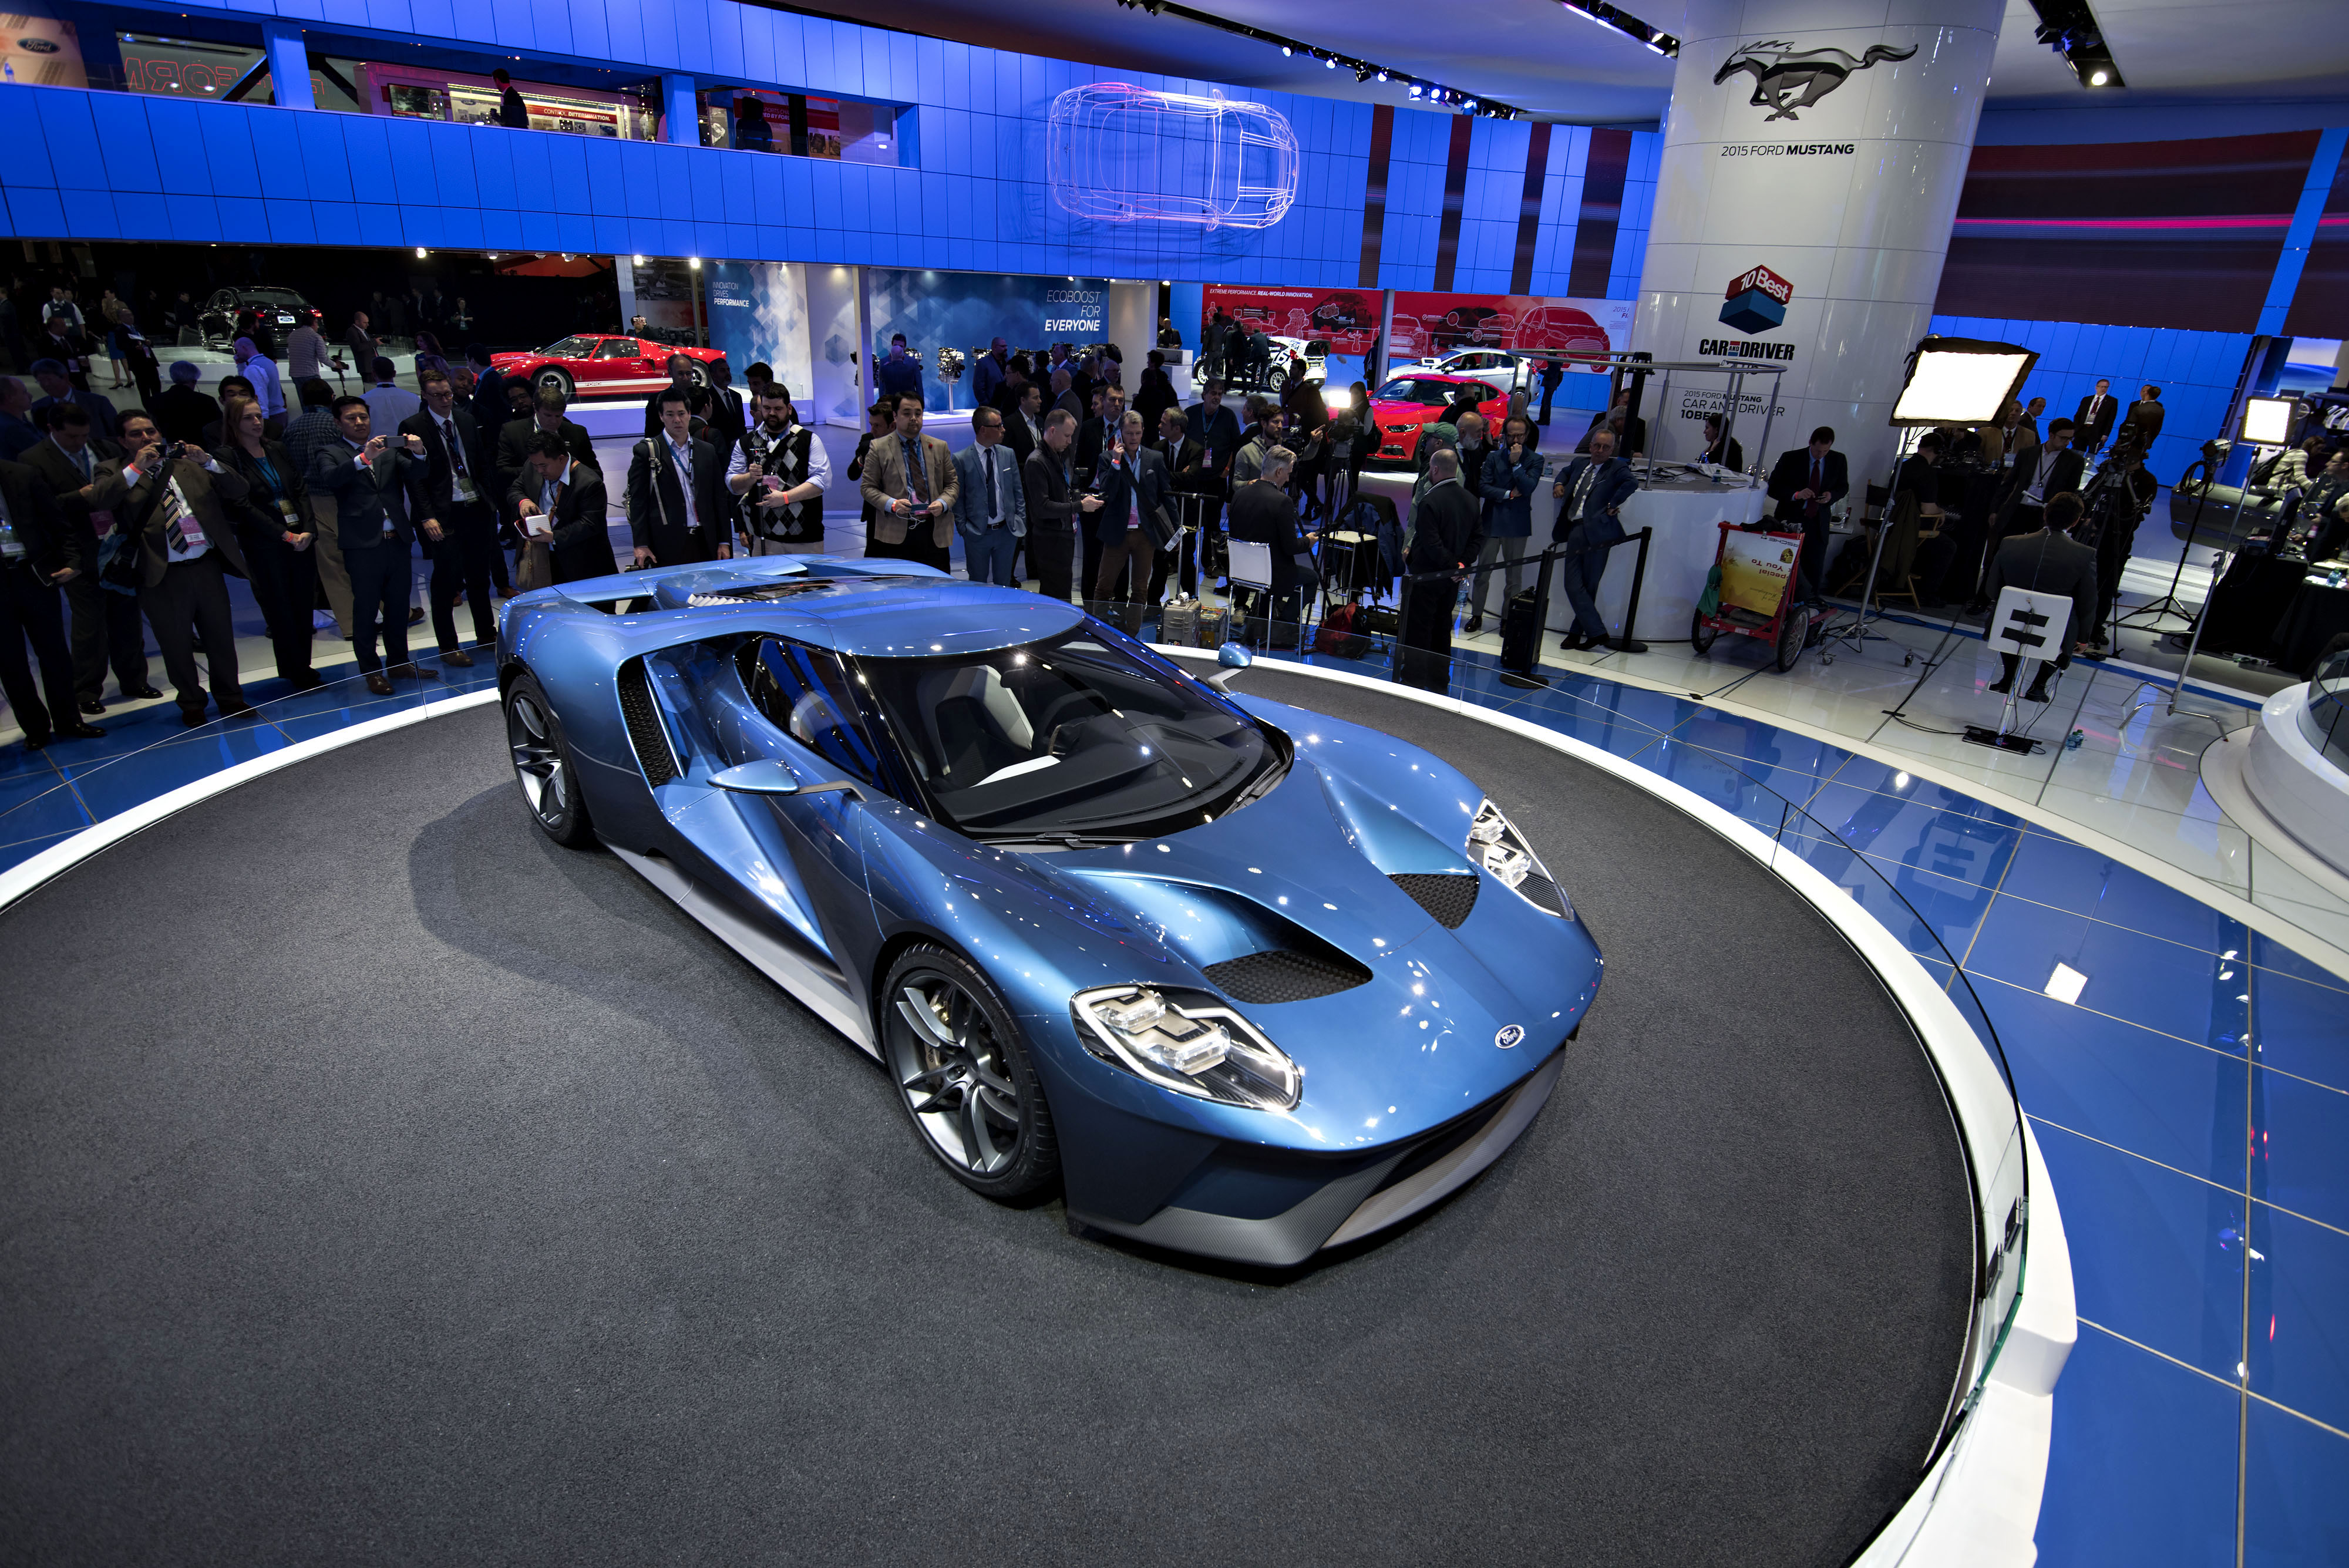 Hot cars at the Detroit auto show | The Japan Times